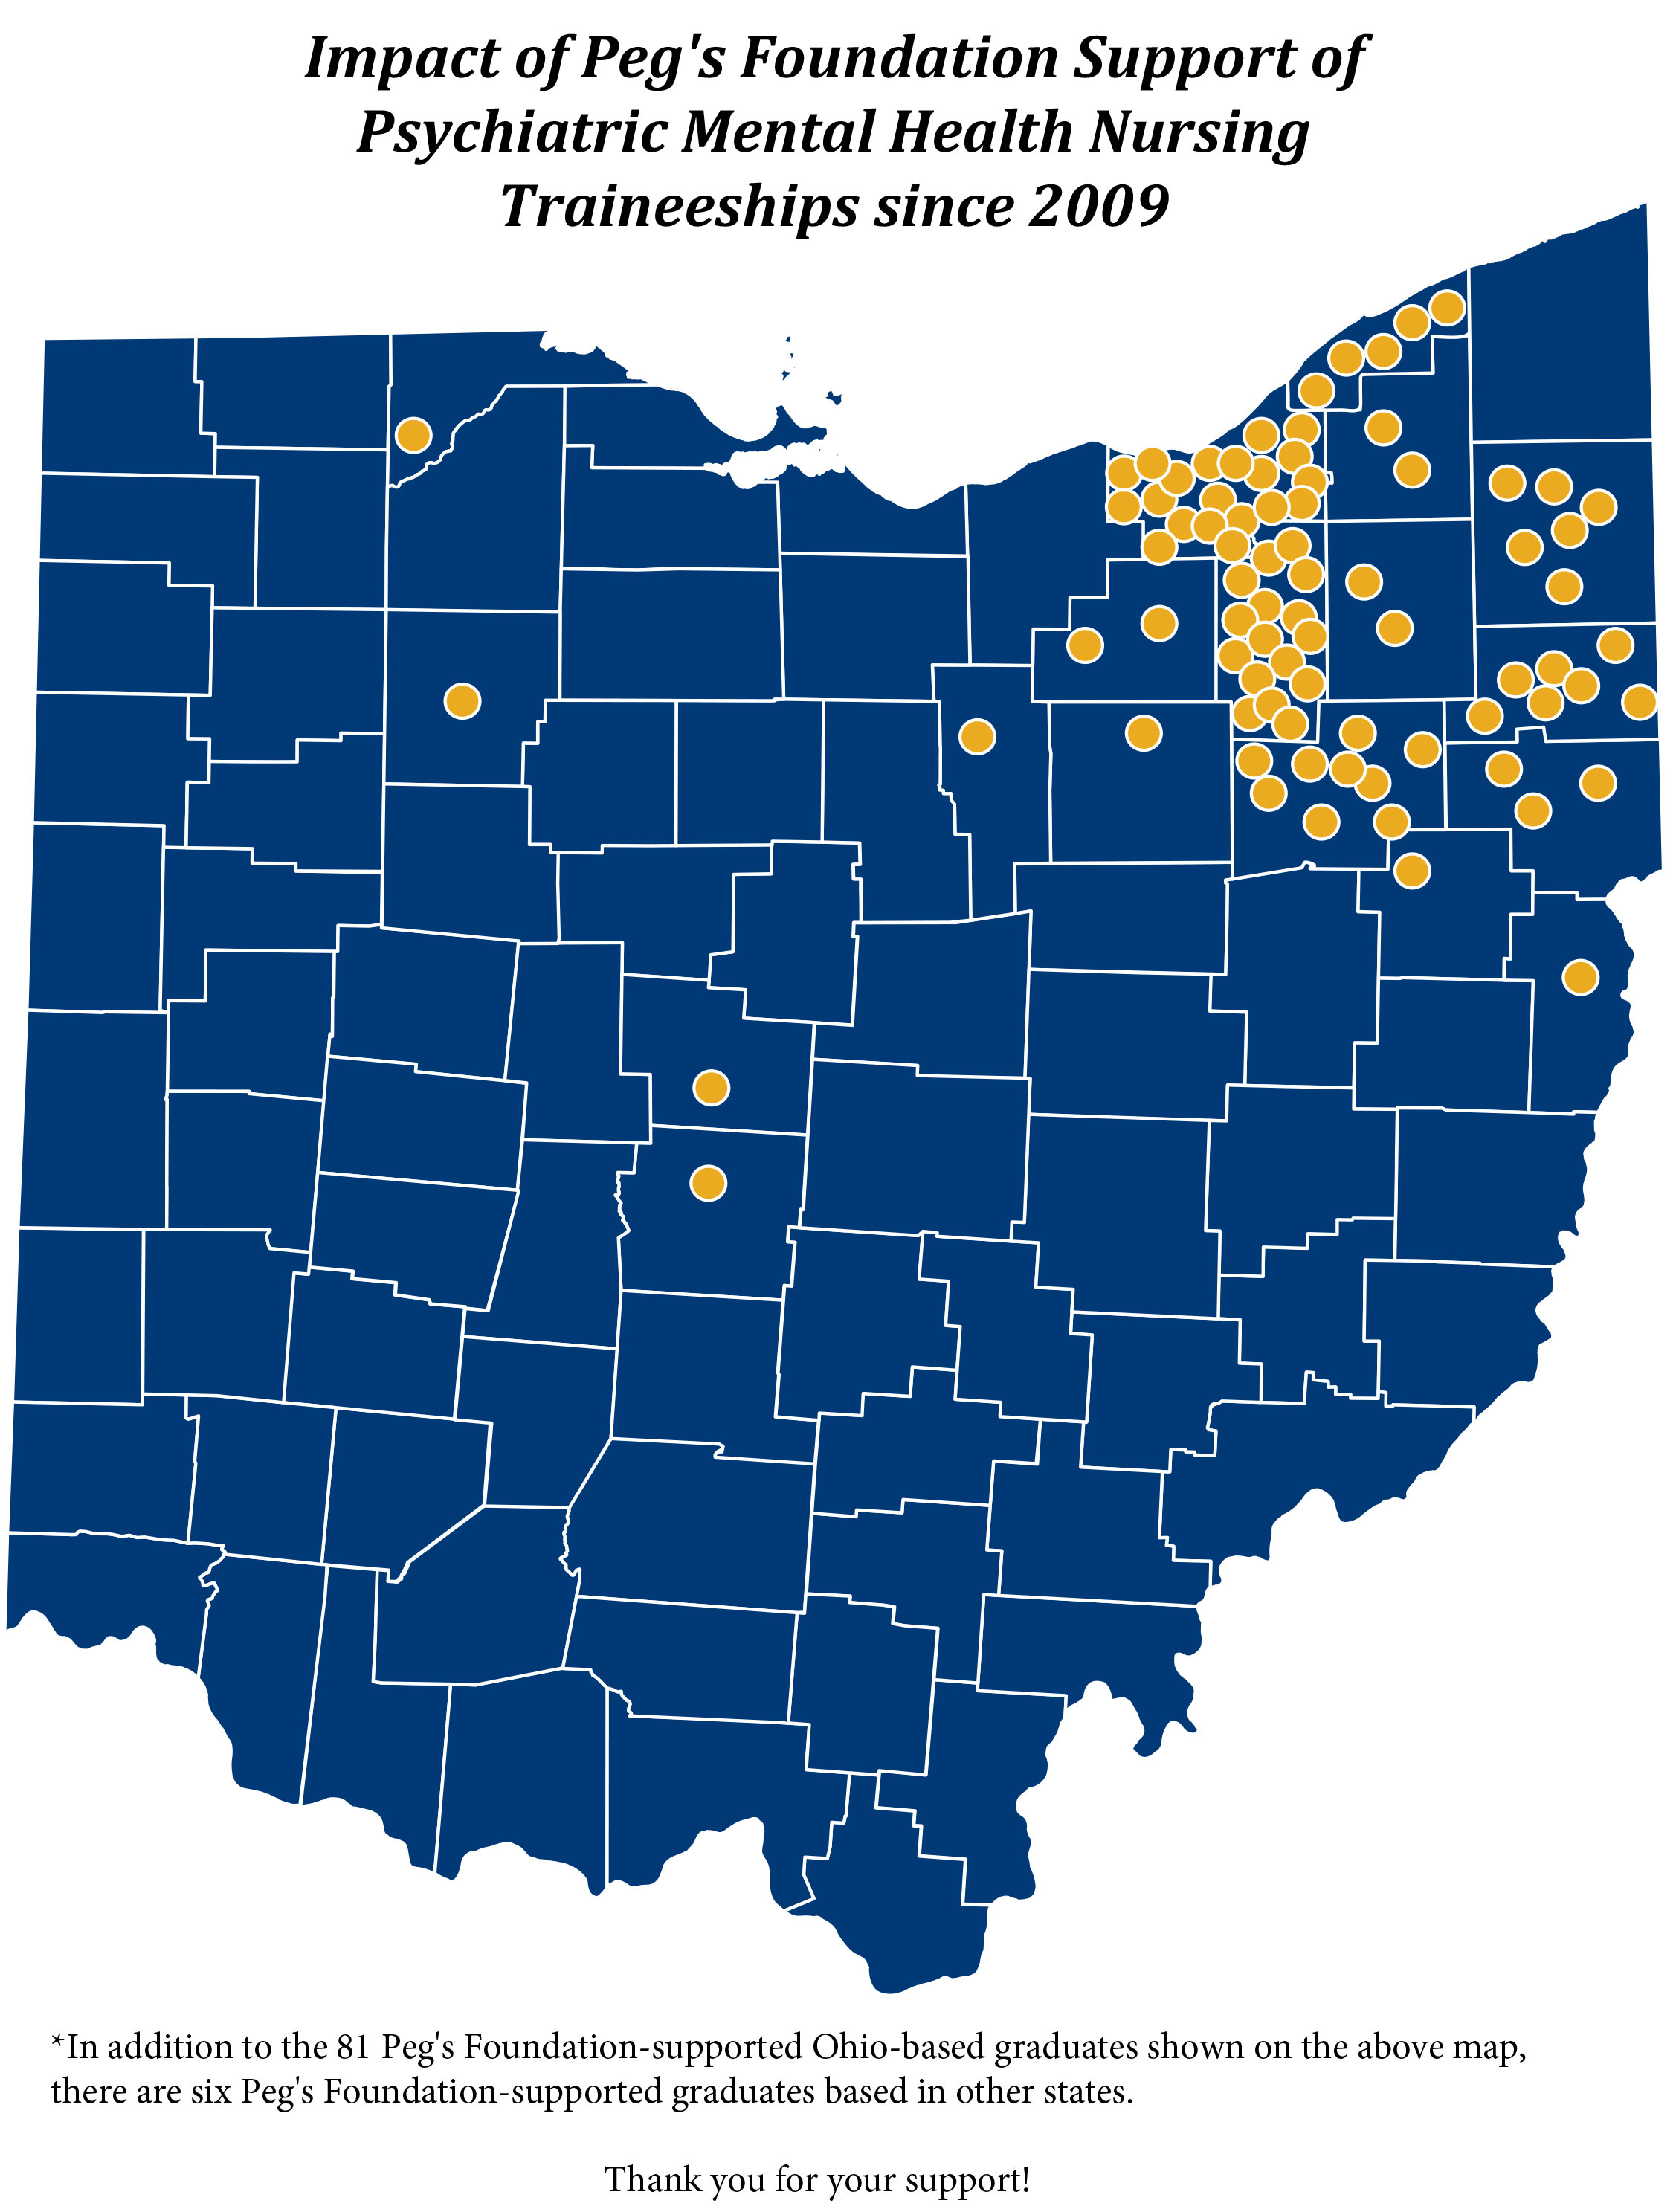 With the assistance of Kent State Foundation Relations, the college recently produced a map showcasing the communities its graduates are working in and the continuous impact Peg's Foundation traineeships are making in northeast Ohio.